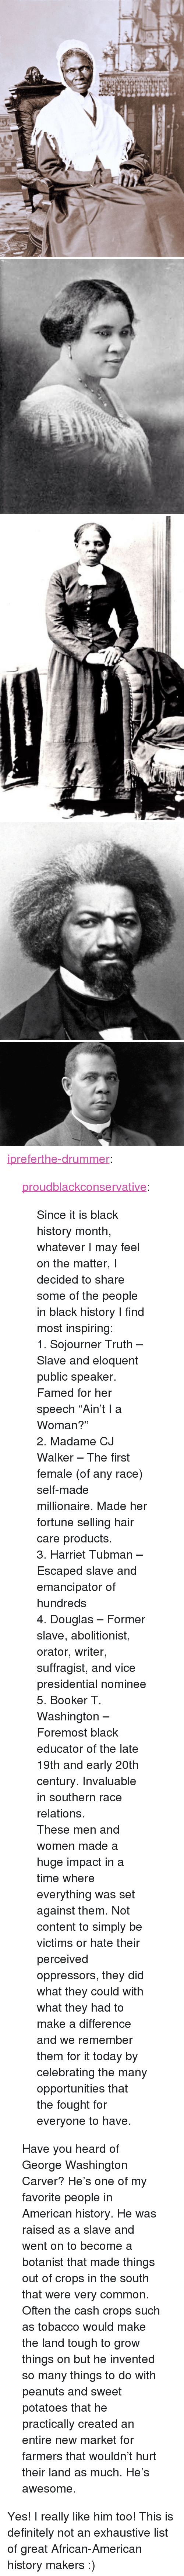 """Black History Month, Definitely, and Tumblr: <p><a href=""""http://ipreferthe-drummer.tumblr.com/post/139685498035/proudblackconservative-since-it-is-black"""" class=""""tumblr_blog"""">ipreferthe-drummer</a>:</p>  <blockquote><p><a href=""""http://proudblackconservative.tumblr.com/post/139682882774/since-it-is-black-history-month-whatever-i-may"""" class=""""tumblr_blog"""">proudblackconservative</a>:</p> <blockquote> <p>Since it is black history month, whatever I may feel on the matter, I decided to share some of the people in black history I find most inspiring:<br/> 1. Sojourner Truth – Slave and eloquent public speaker. Famed for her speech """"Ain't I a Woman?""""<br/> 2. Madame CJ Walker – The first female (of any race) self-made millionaire. Made her fortune selling hair care products.<br/> 3. Harriet Tubman – Escaped slave and emancipator of hundreds<br/> 4. Douglas – Former slave, abolitionist, orator, writer, suffragist, and vice presidential nominee<br/> 5. Booker T. Washington – Foremost black educator of the late 19th and early 20th century. Invaluable in southern race relations.</p>  <p>These men and women made a huge impact in a time where everything was set against them. Not content to simply be victims or hate their perceived oppressors, they did what they could with what they had to make a difference and we remember them for it today by celebrating the many opportunities that the fought for everyone to have.</p> </blockquote> <p>Have you heard of George Washington Carver? He's one of my favorite people in American history. He was raised as a slave and went on to become a botanist that made things out of crops in the south that were very common. Often the cash crops such as tobacco would make the land tough to grow things on but he invented so many things to do with peanuts and sweet potatoes that he practically created an entire new market for farmers that wouldn't hurt their land as much. He's awesome.</p></blockquote>  <p>Yes! I really like him too! This is definitely not an"""